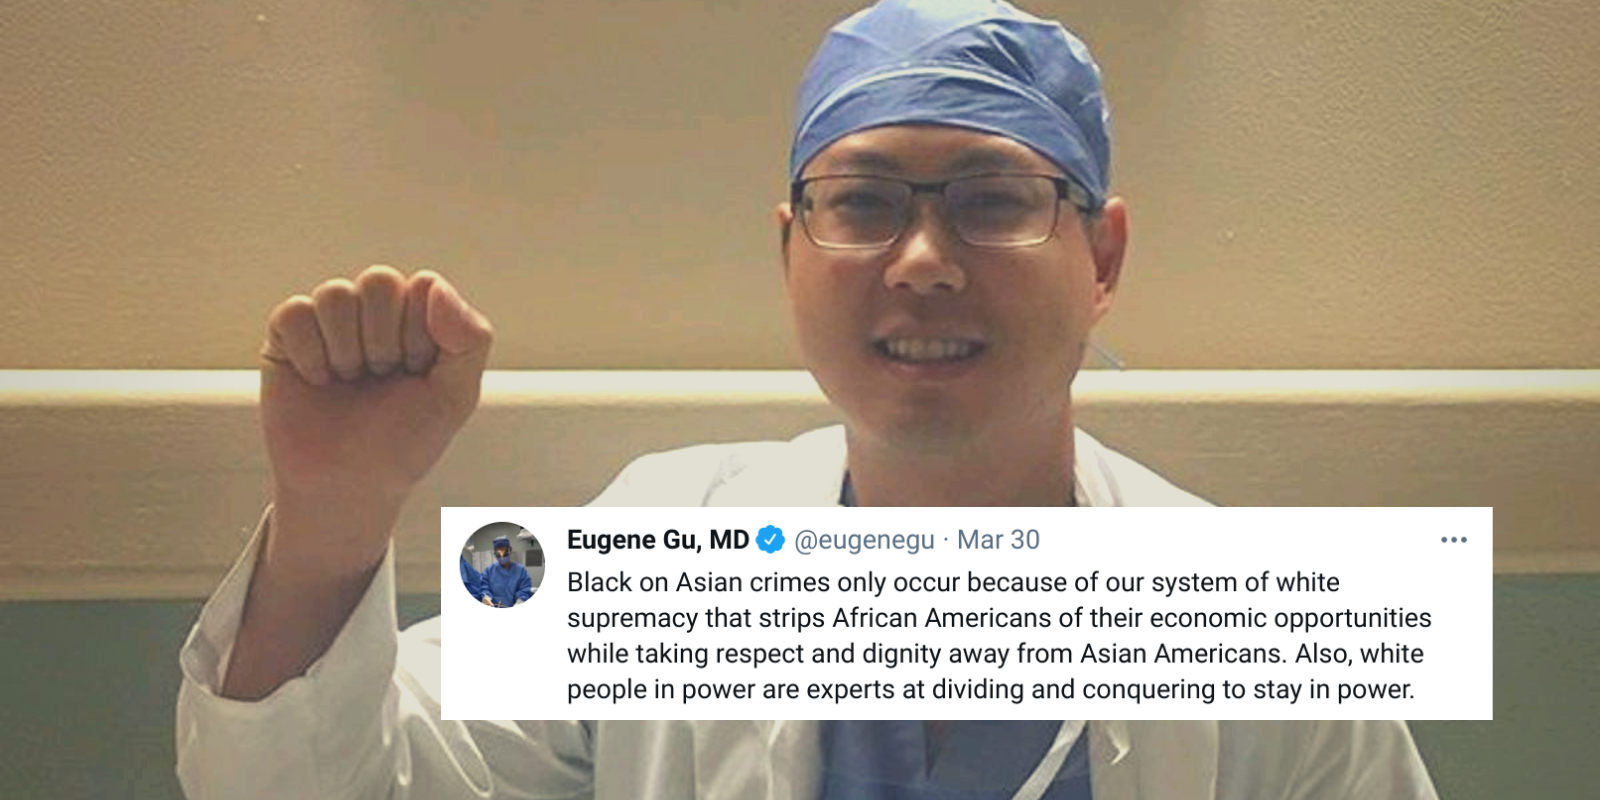 Notorious Anti-Trump doctor claims black-on-Asian crime occurs because of 'white supremacy'